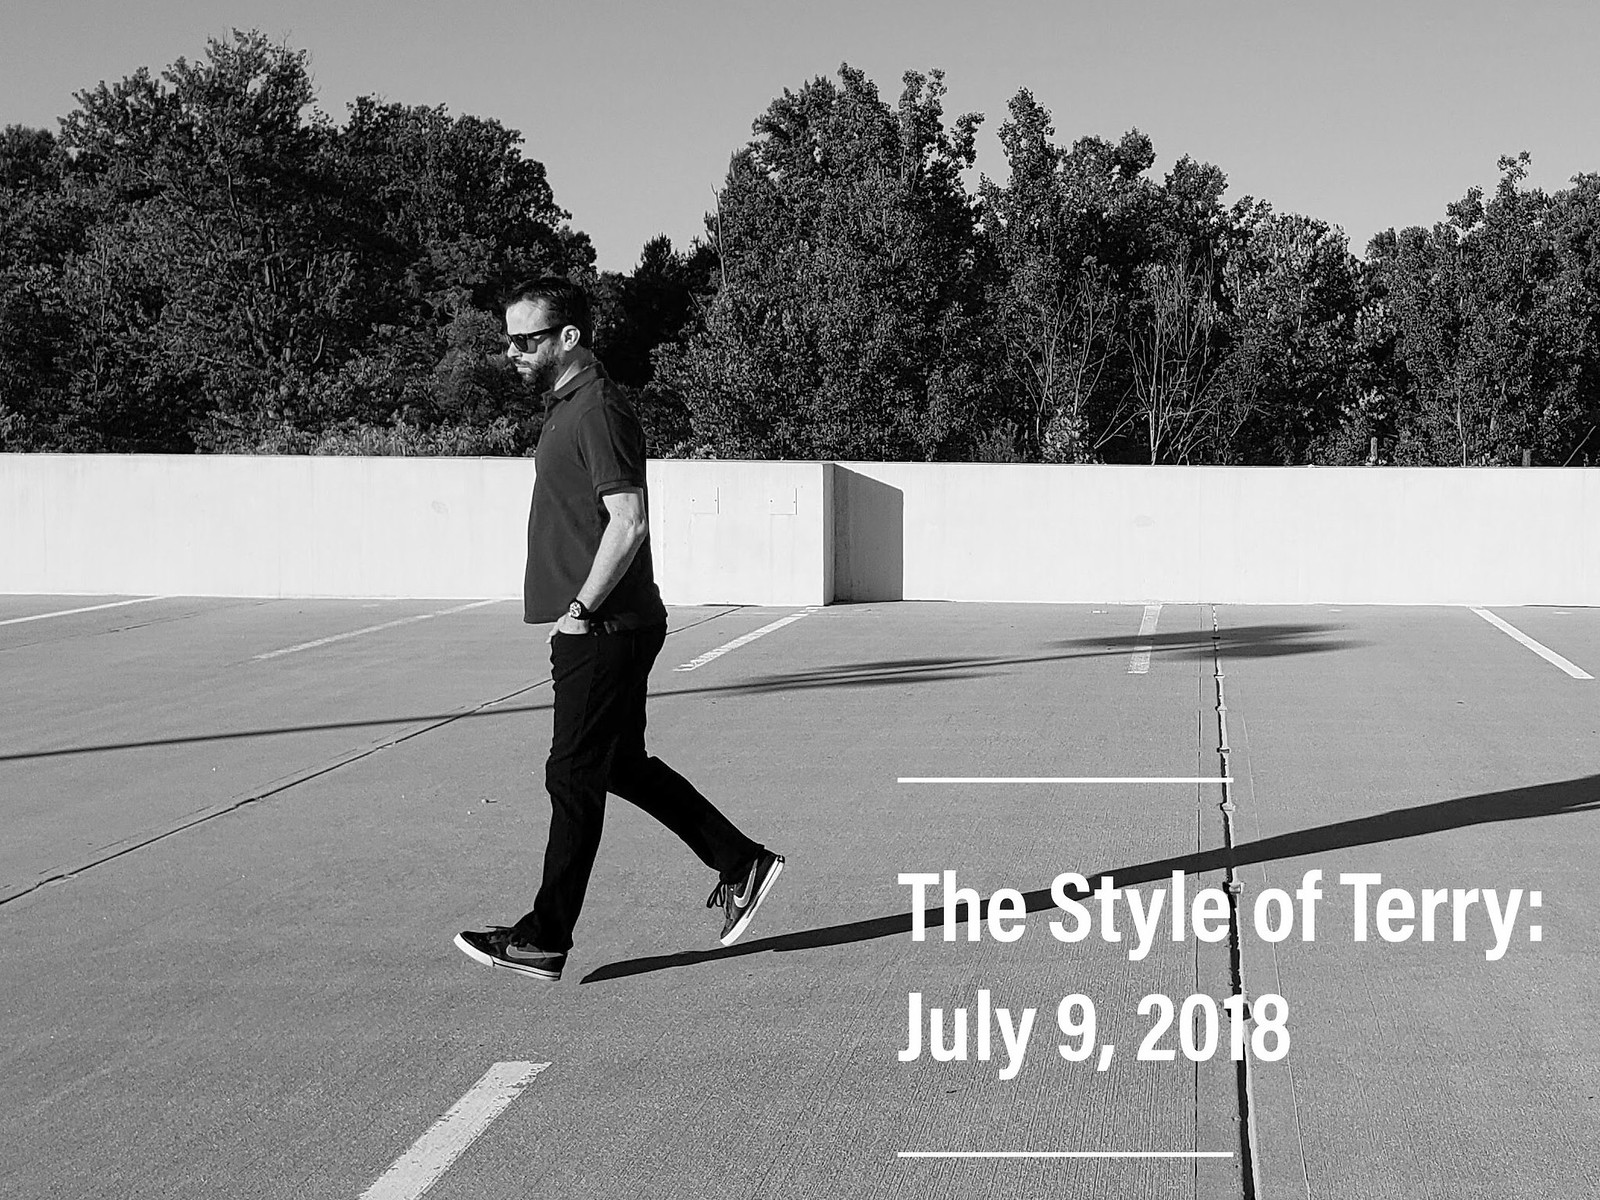 The Style of Terry: 7.9.18